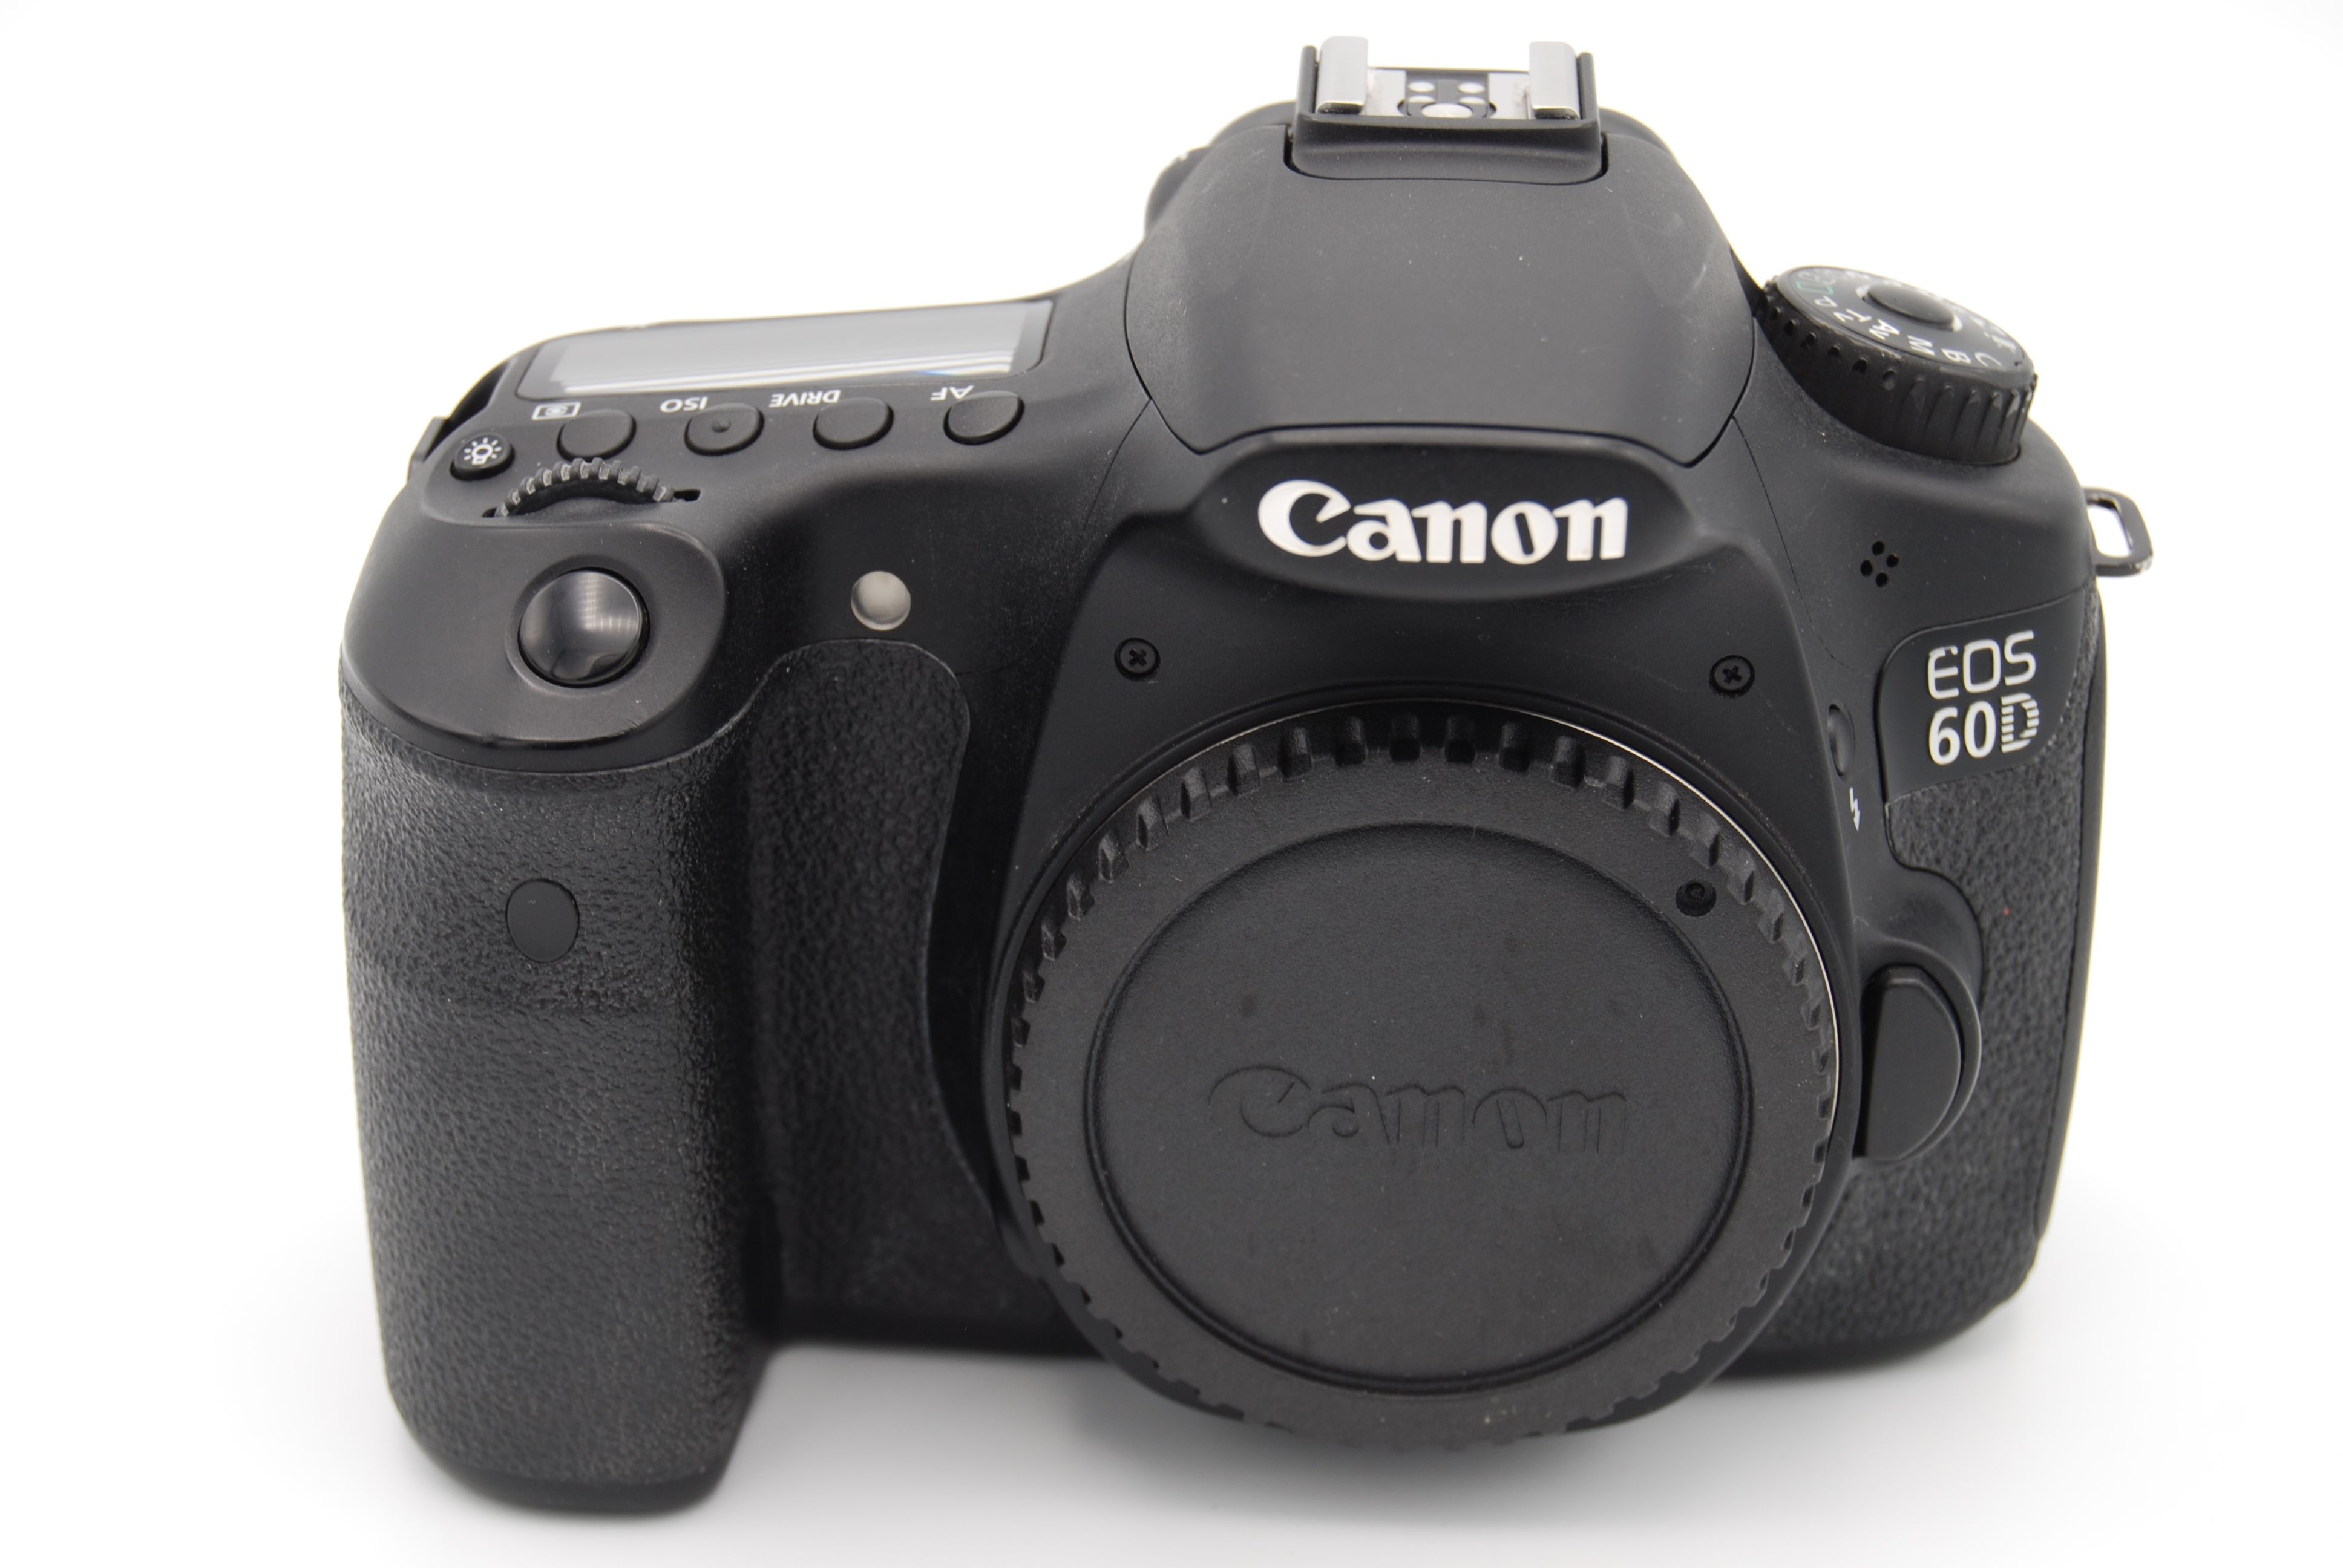 Canon eos 60d 18 0 mp 3screen digital slr camera black body only